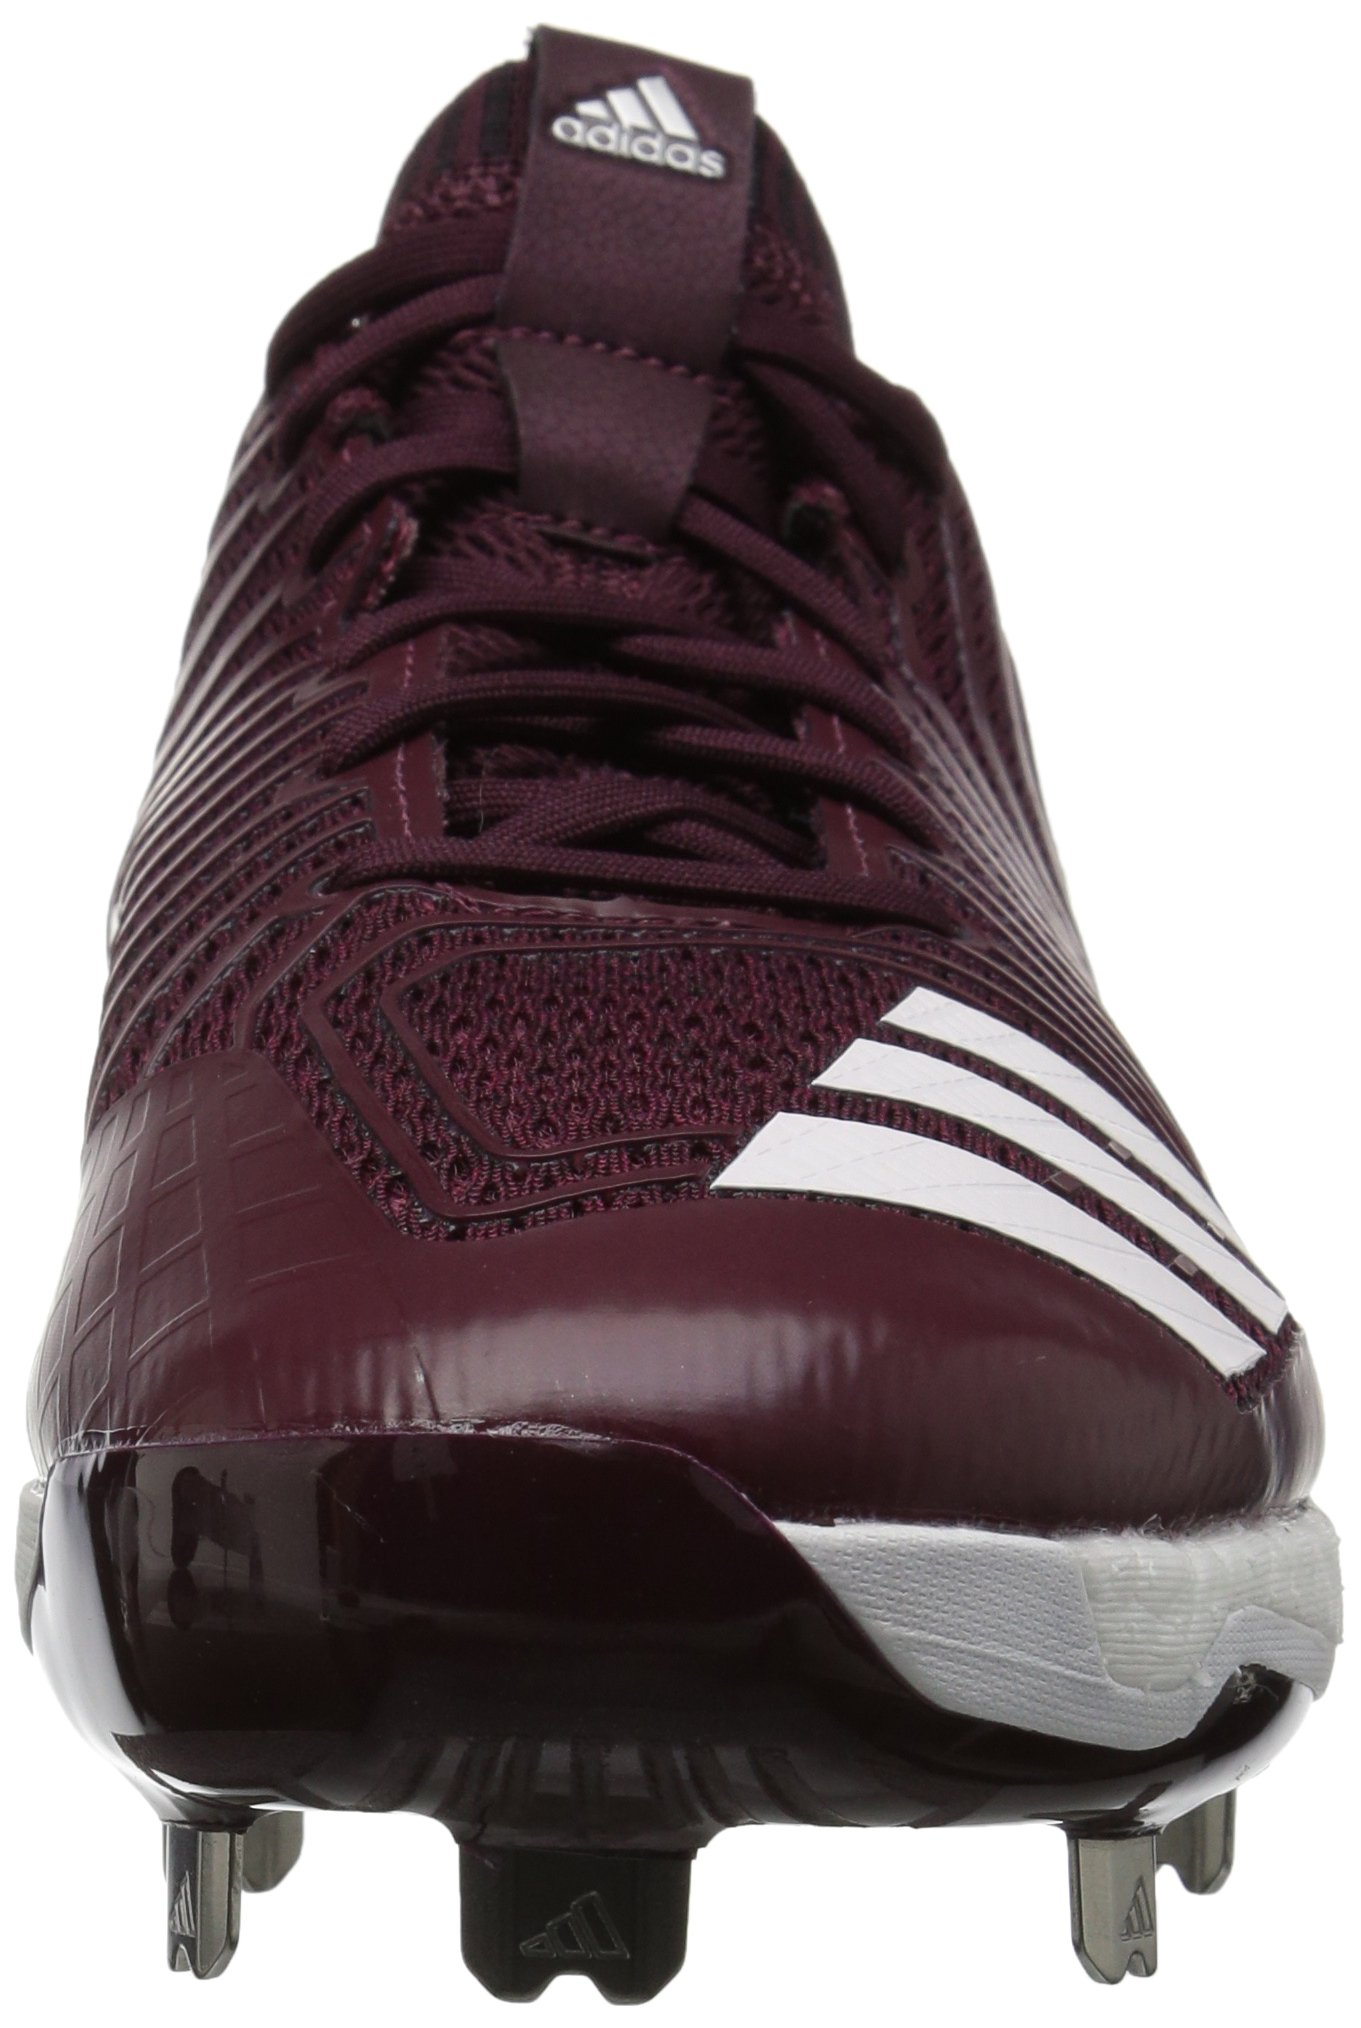 adidas Men's Freak X Carbon Mid Baseball Shoe, Maroon/White/Metallic Silver, 7.5 Medium US by adidas (Image #4)